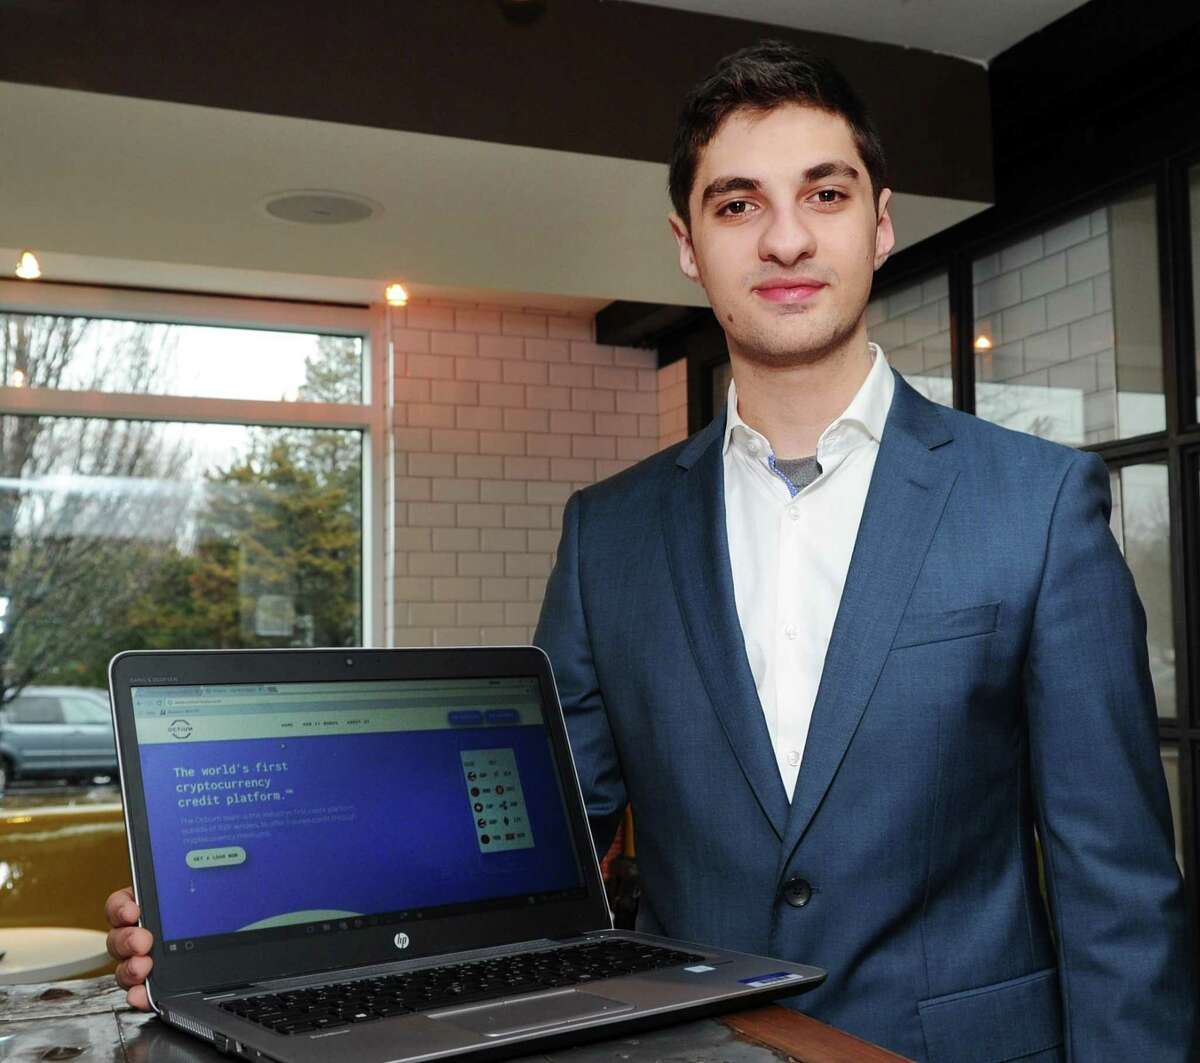 Marc Baghadjian with a computer showing the website of his company, Octium. Baghadjian, a 2017 graduate of the Brunswick School, is an entrepreneur.